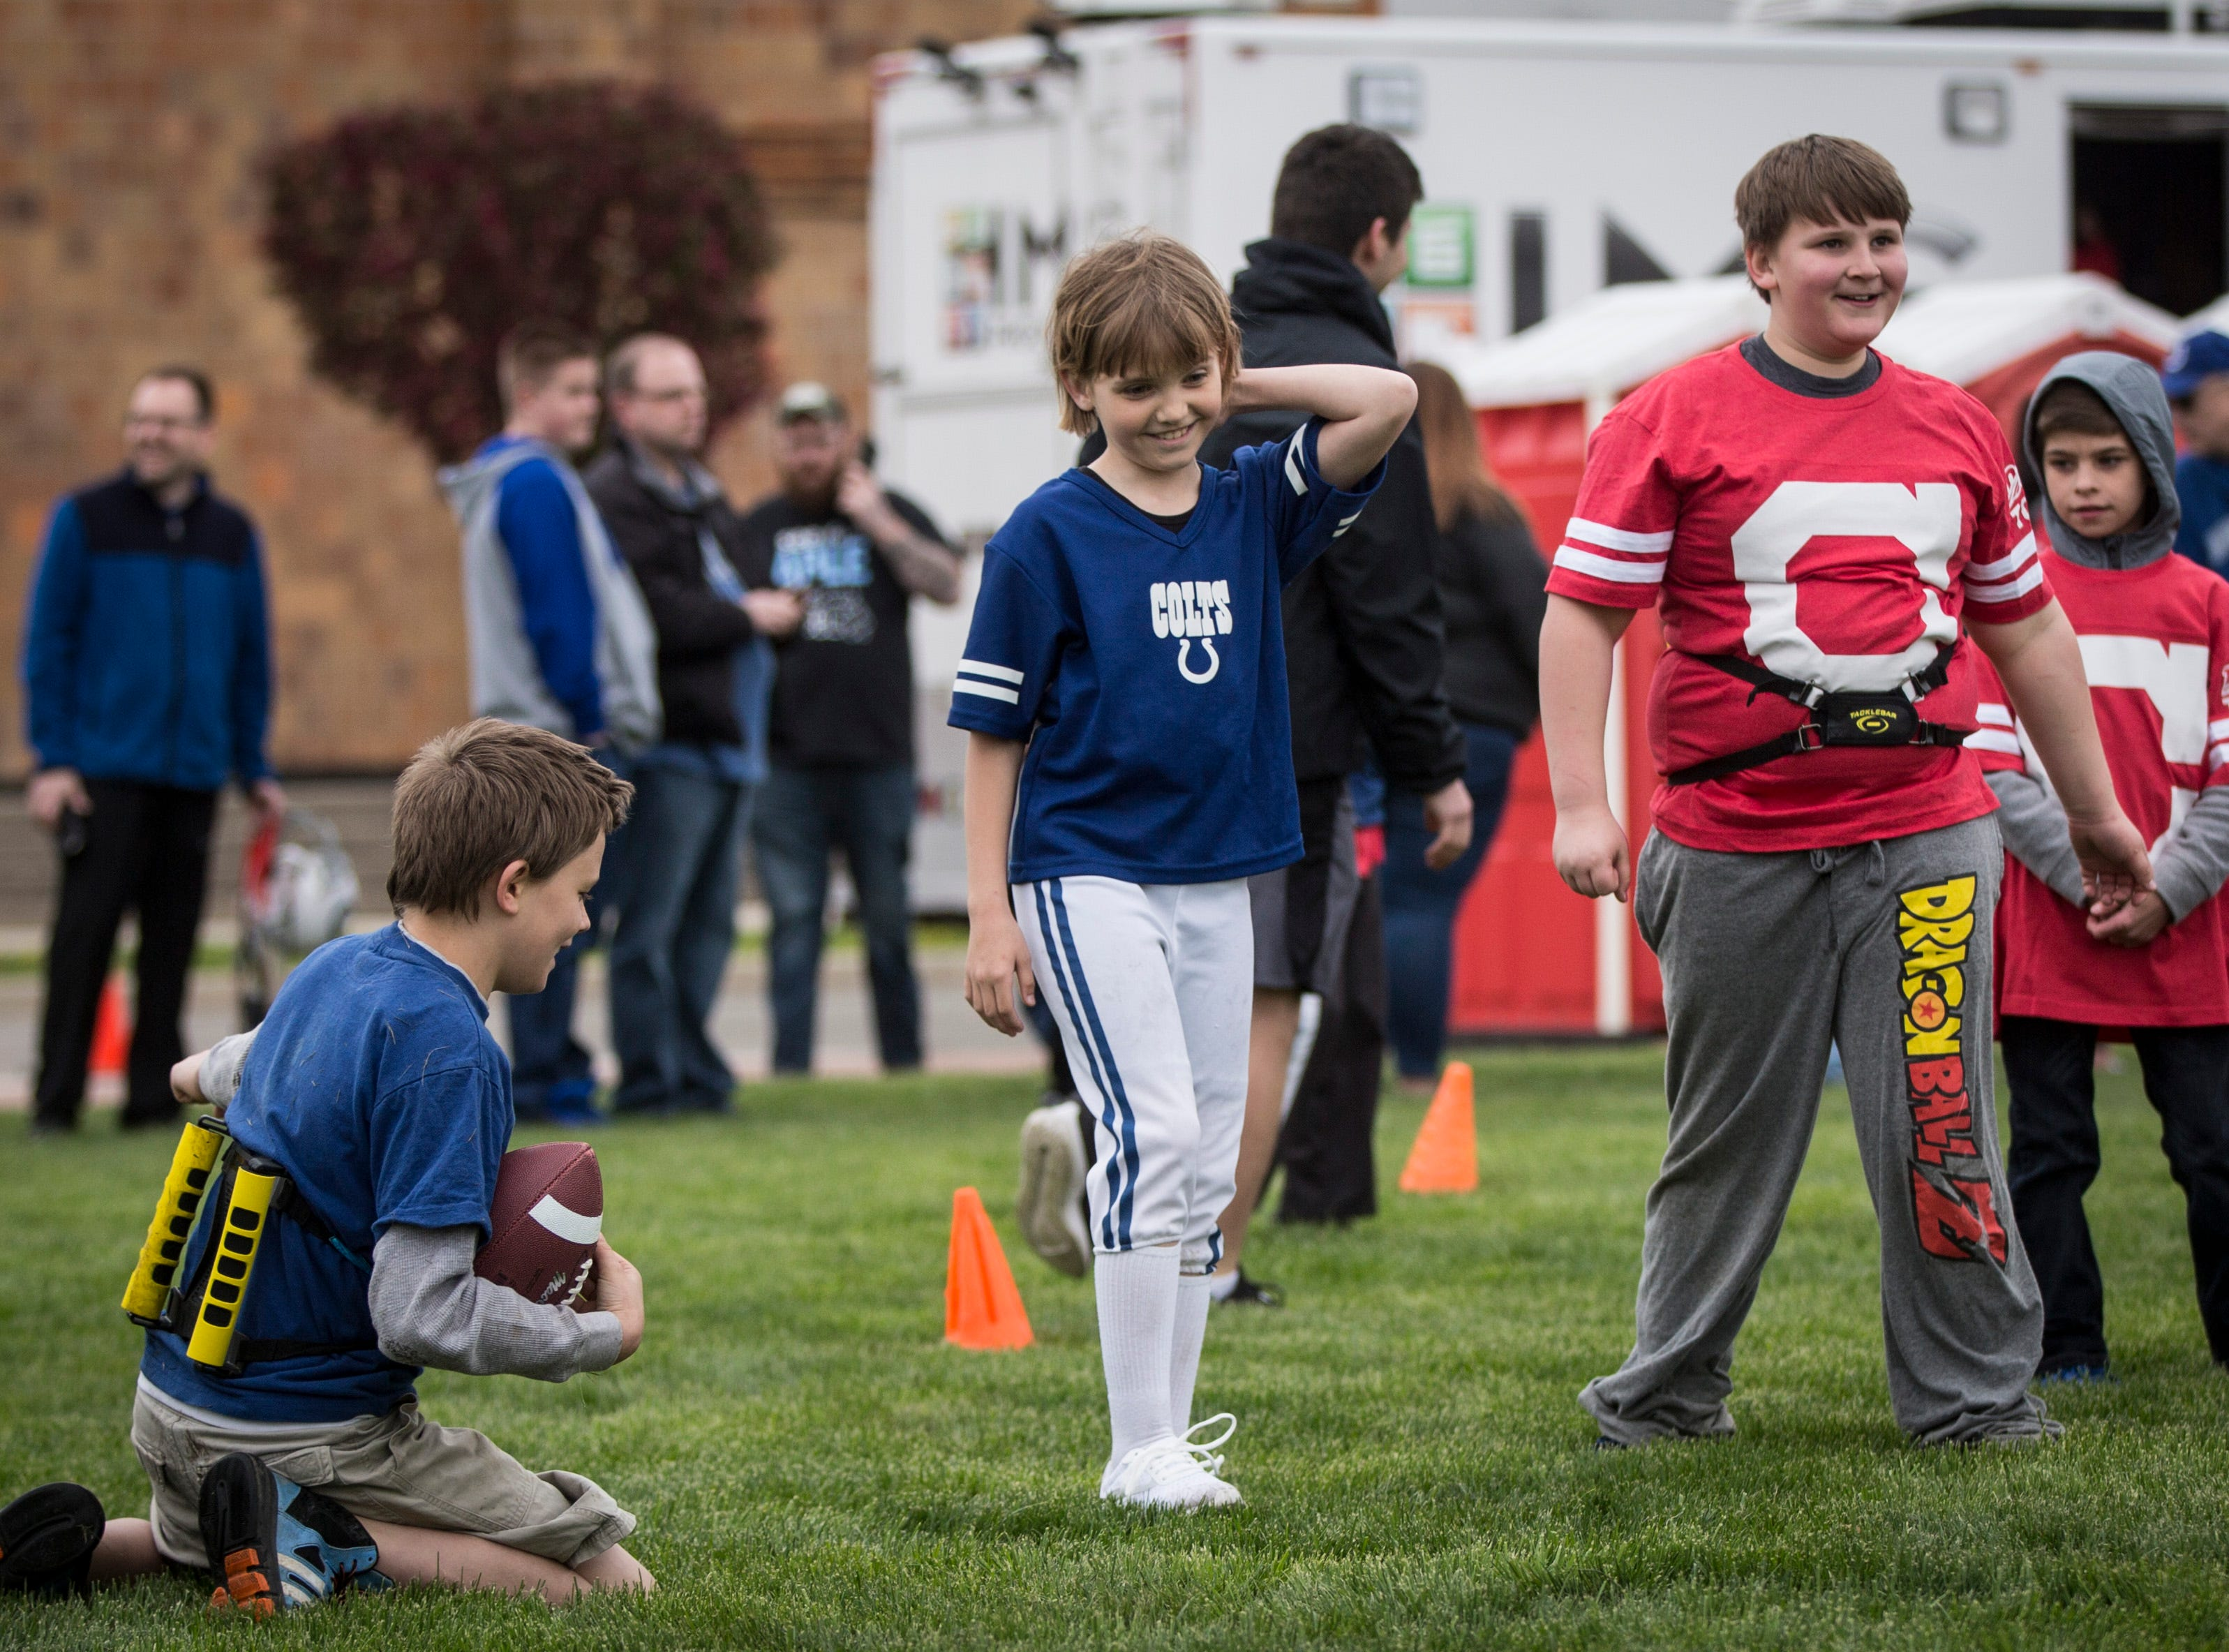 Kids take part in a mock football drill on April 27 during the Draft Day Tailgate event at Canan Commons. The event saw two live picks for the NFL draft in addition to family fun.